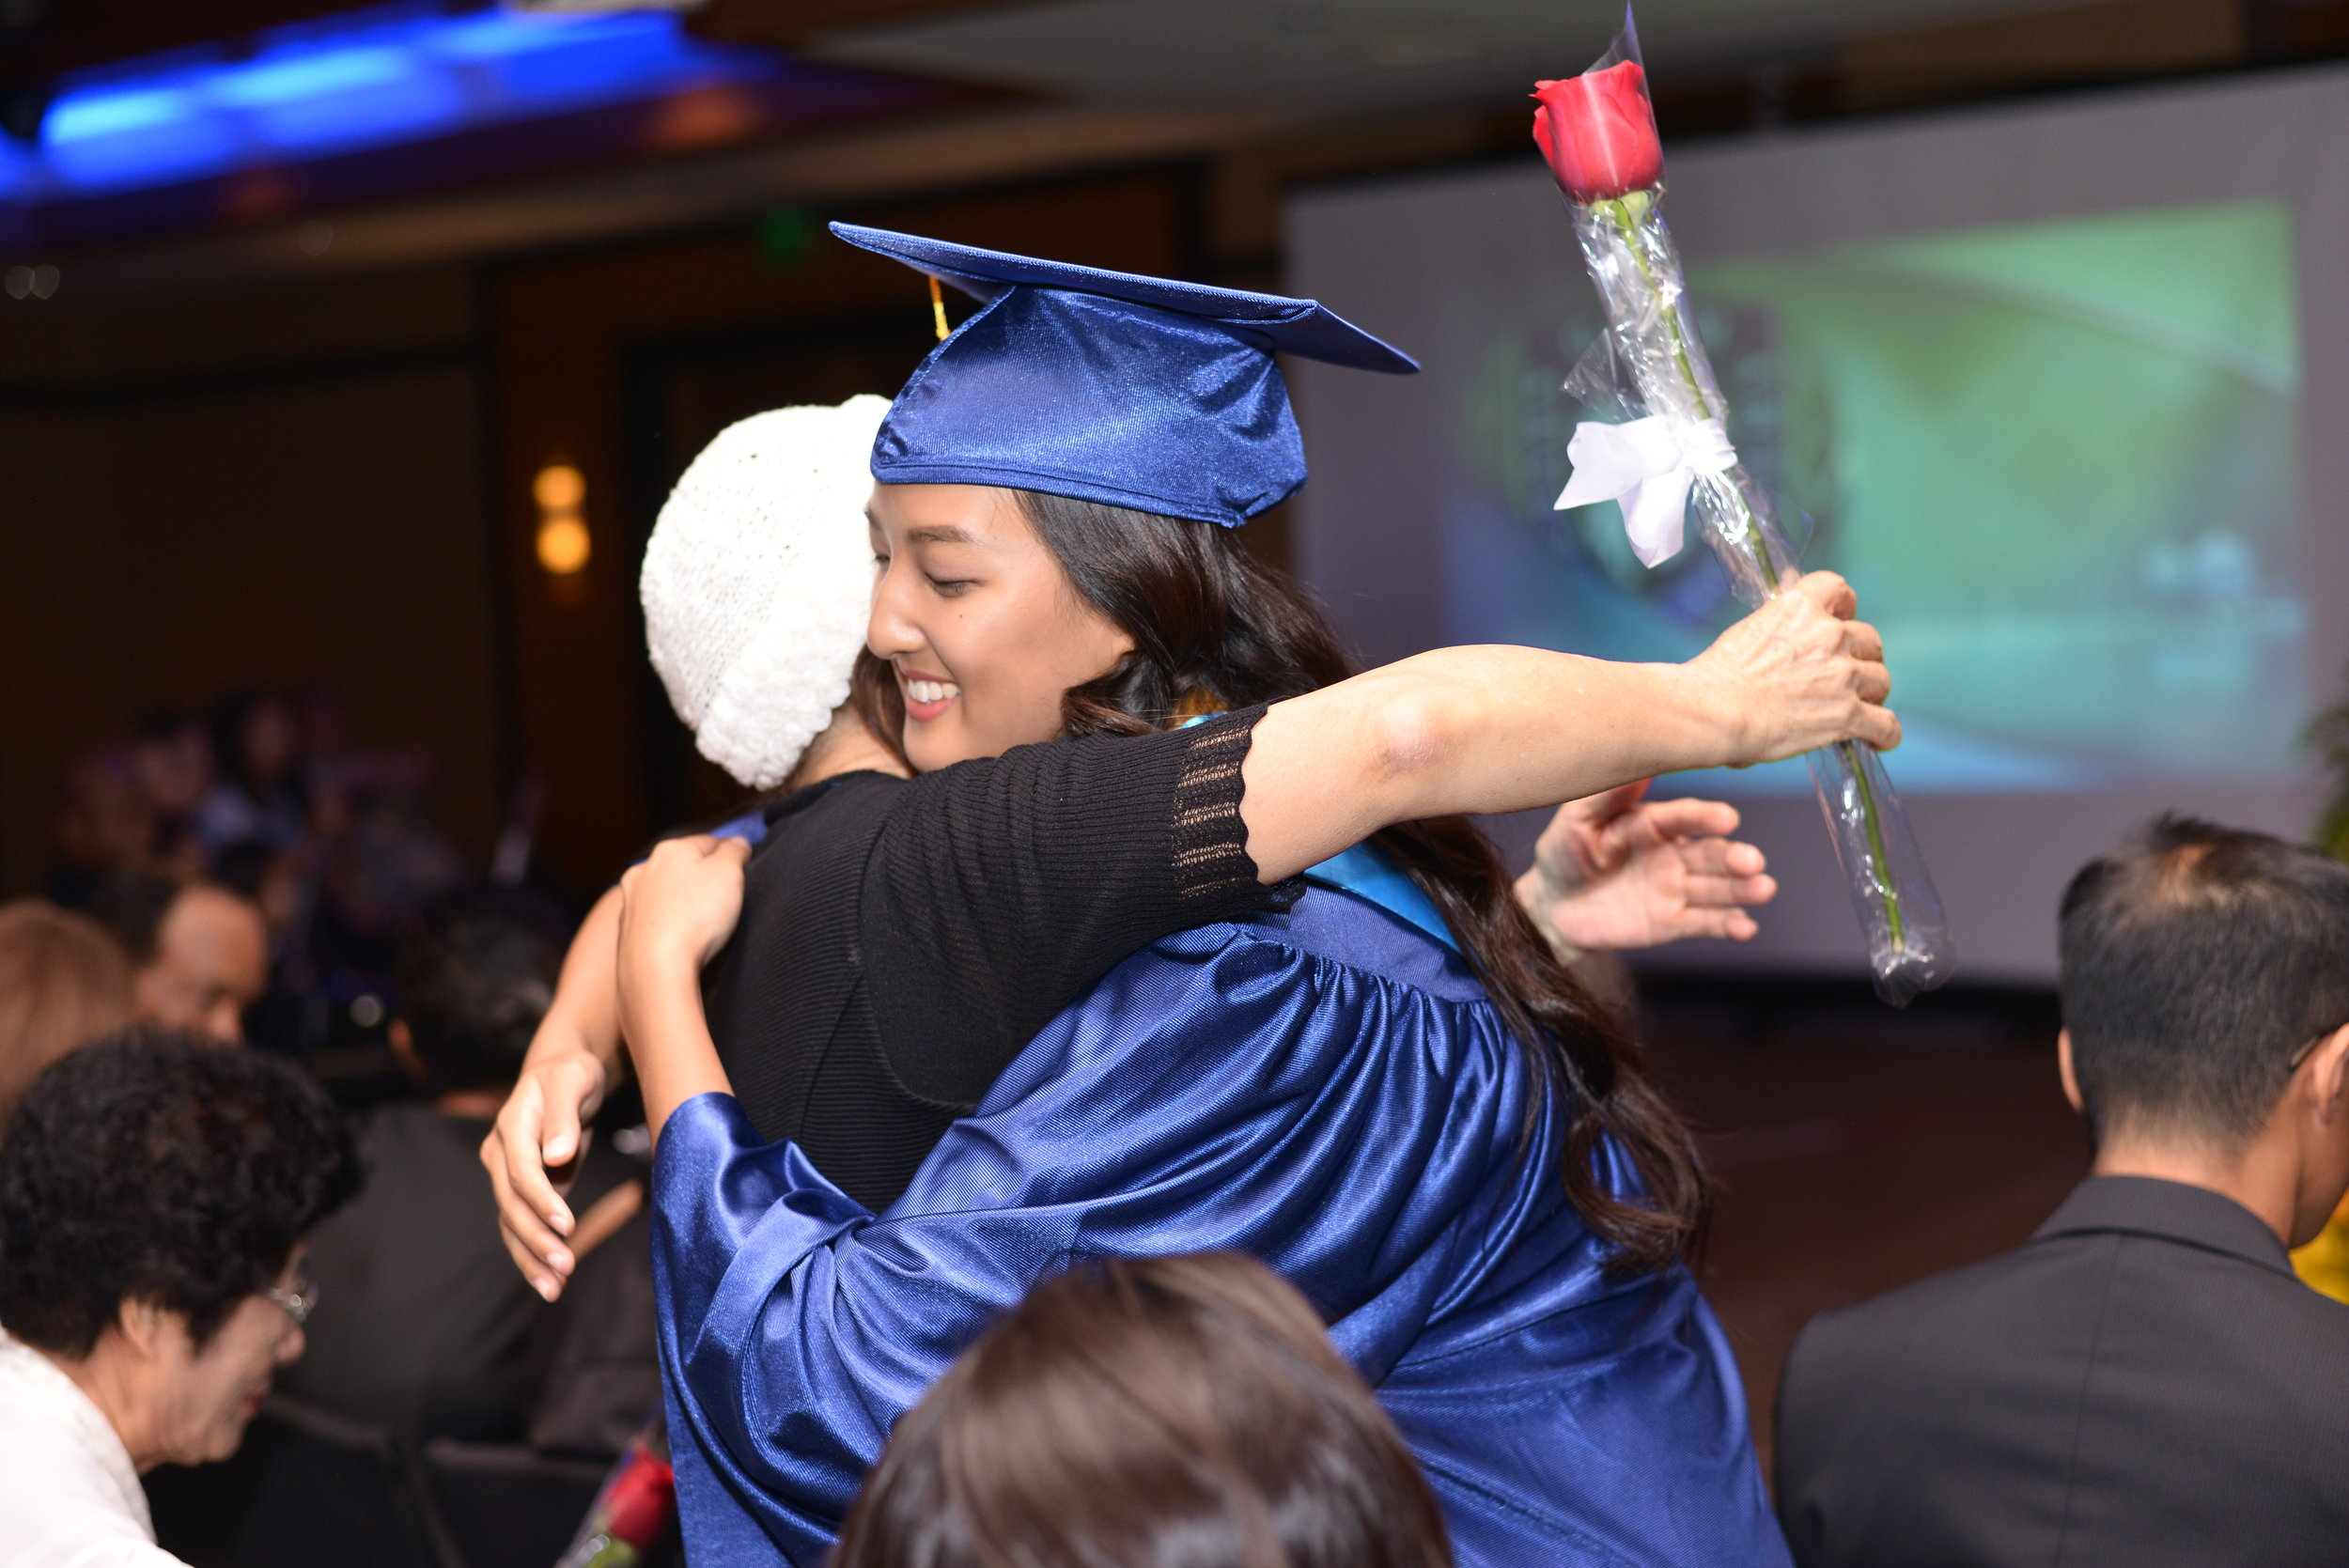 The graduates showed their appreciation to their family members by giving them roses.